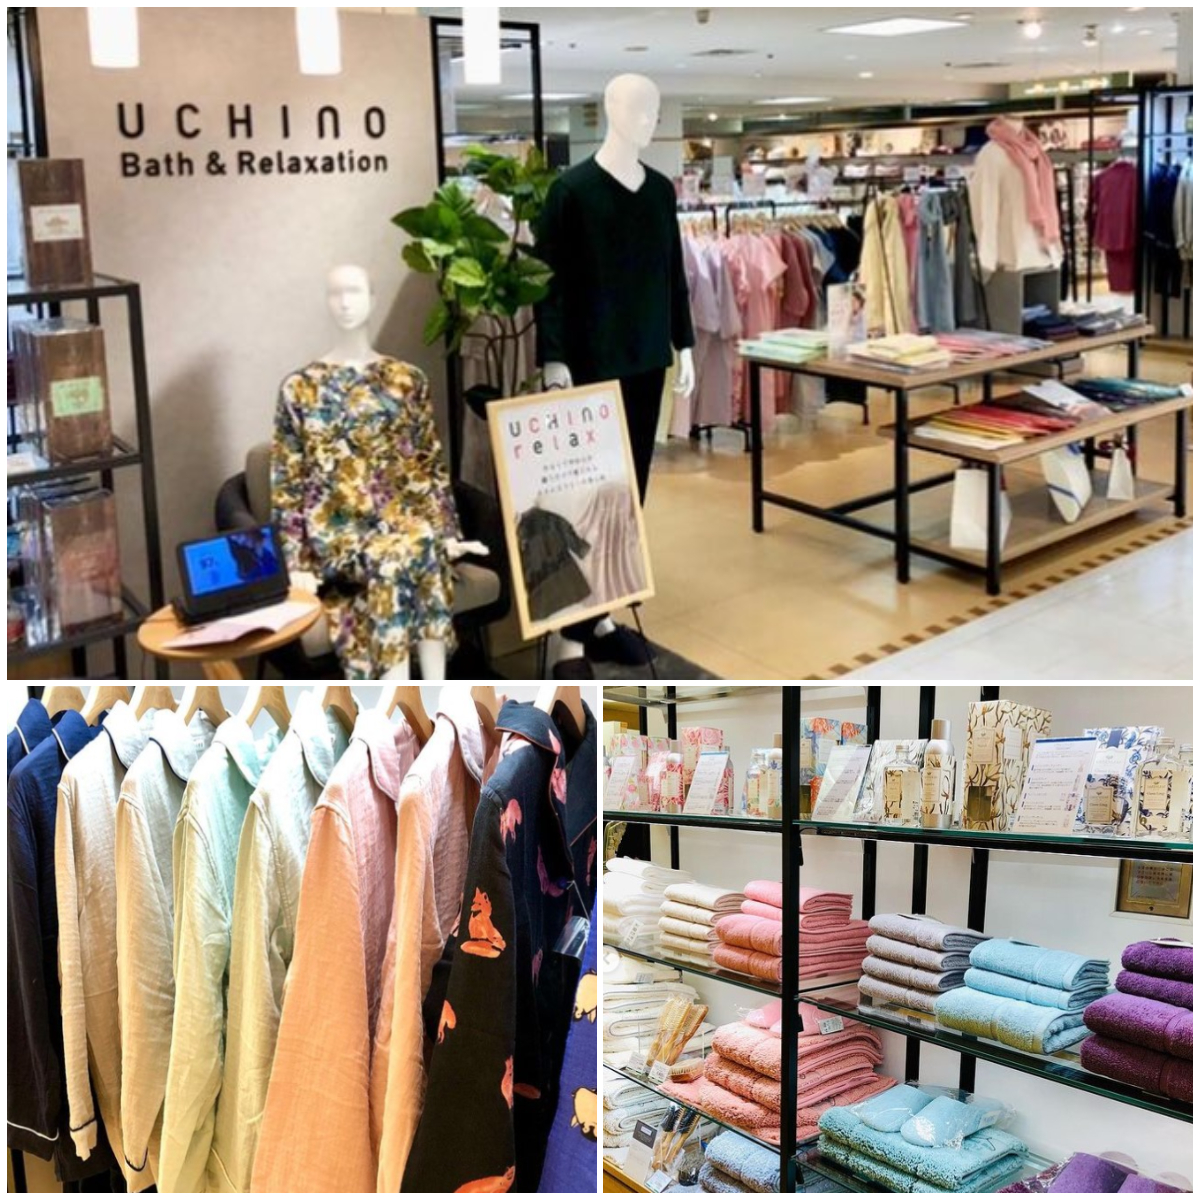 UCHINO Bath&Relaxation香林坊大和店